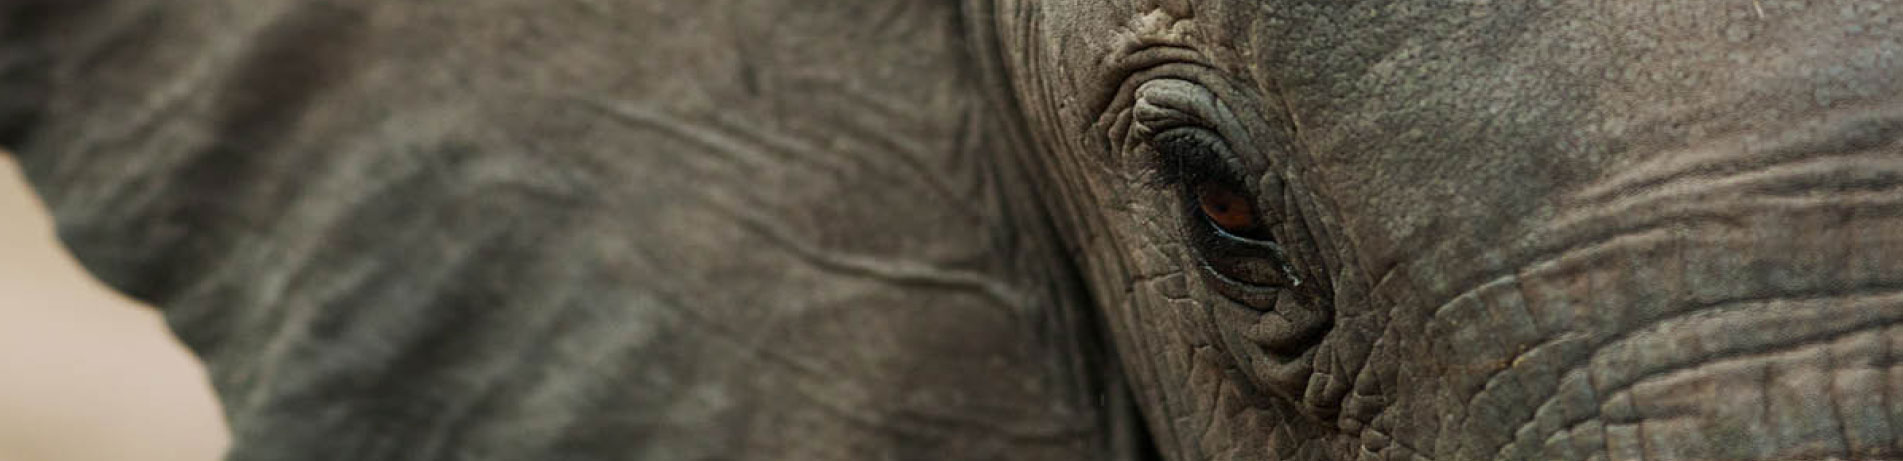 Close up image of an African elephant, Malawi